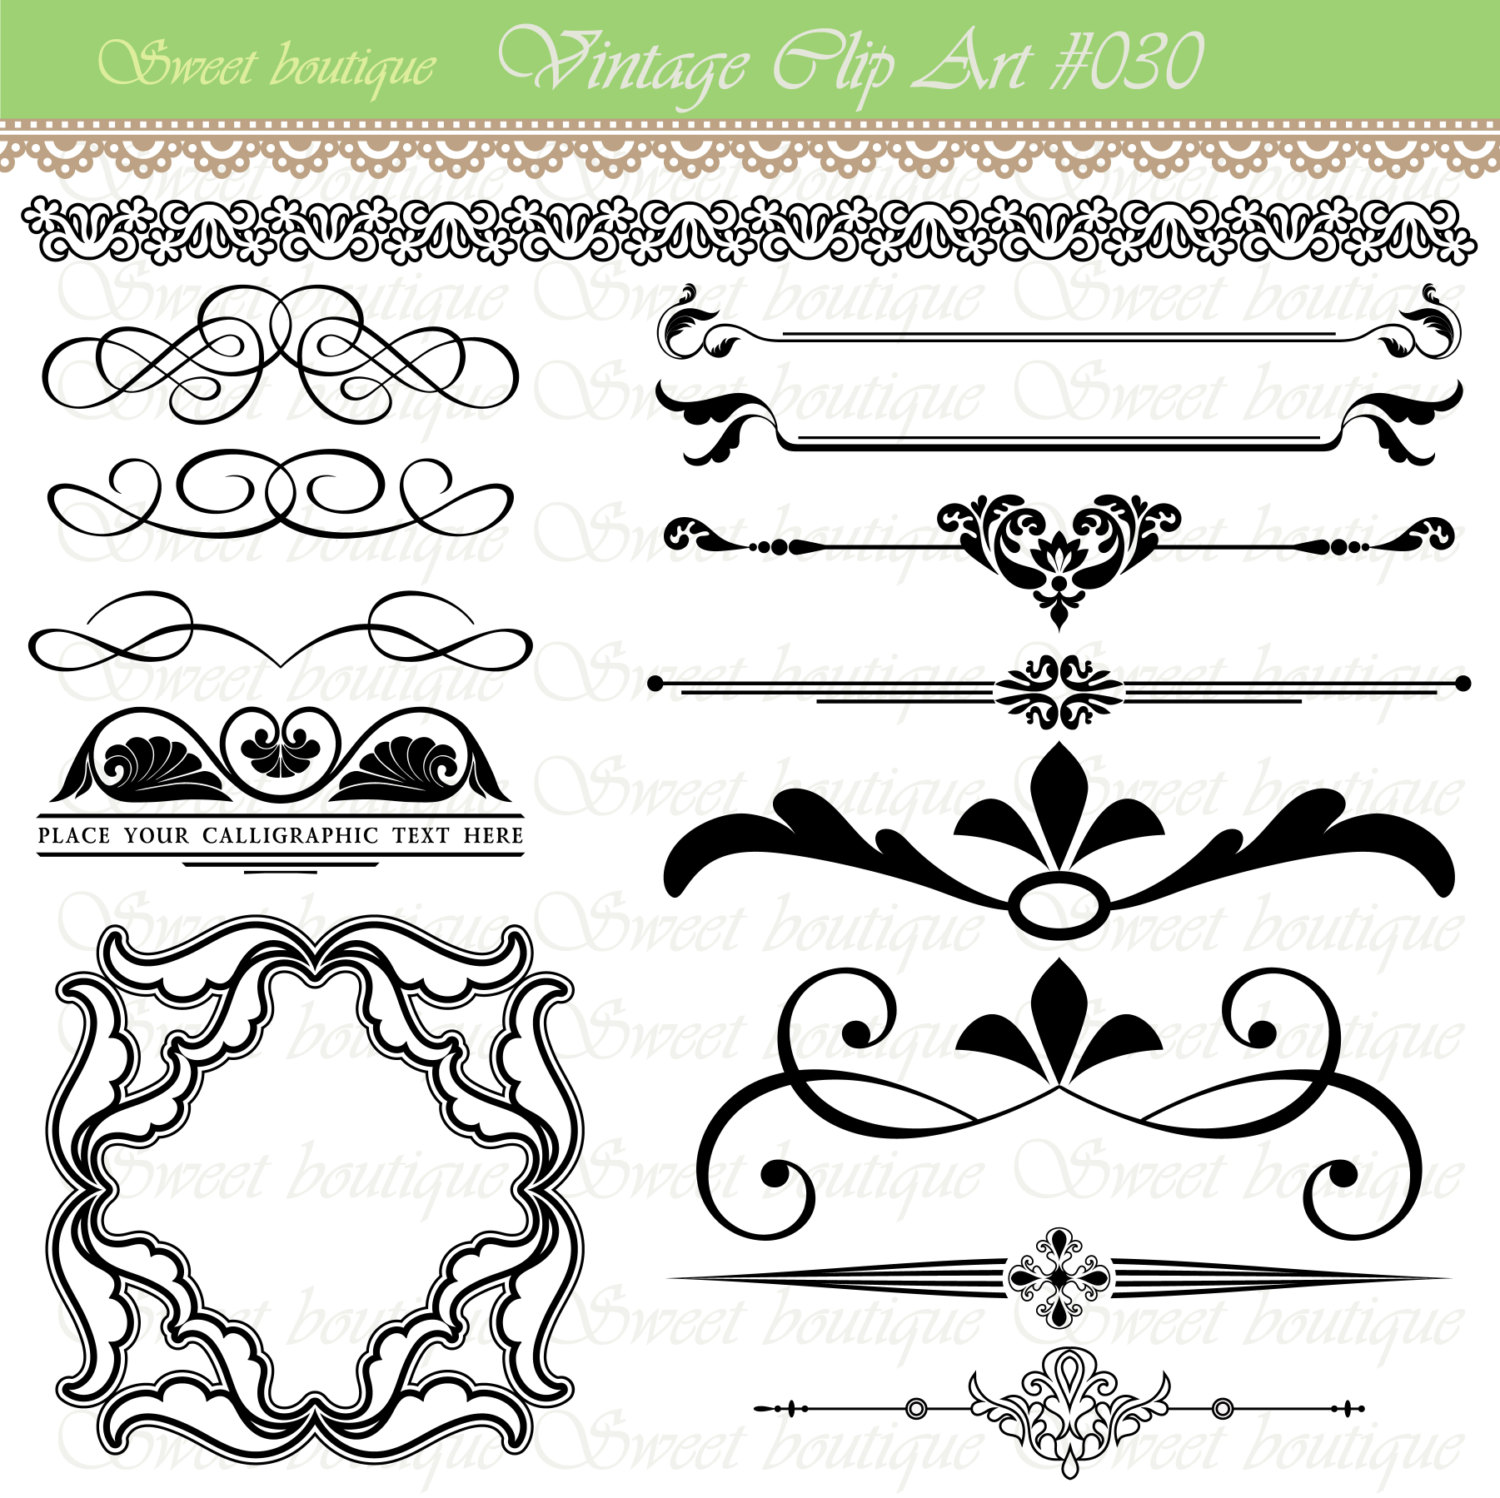 Wedding card clipart free download 5 » Clipart Station.